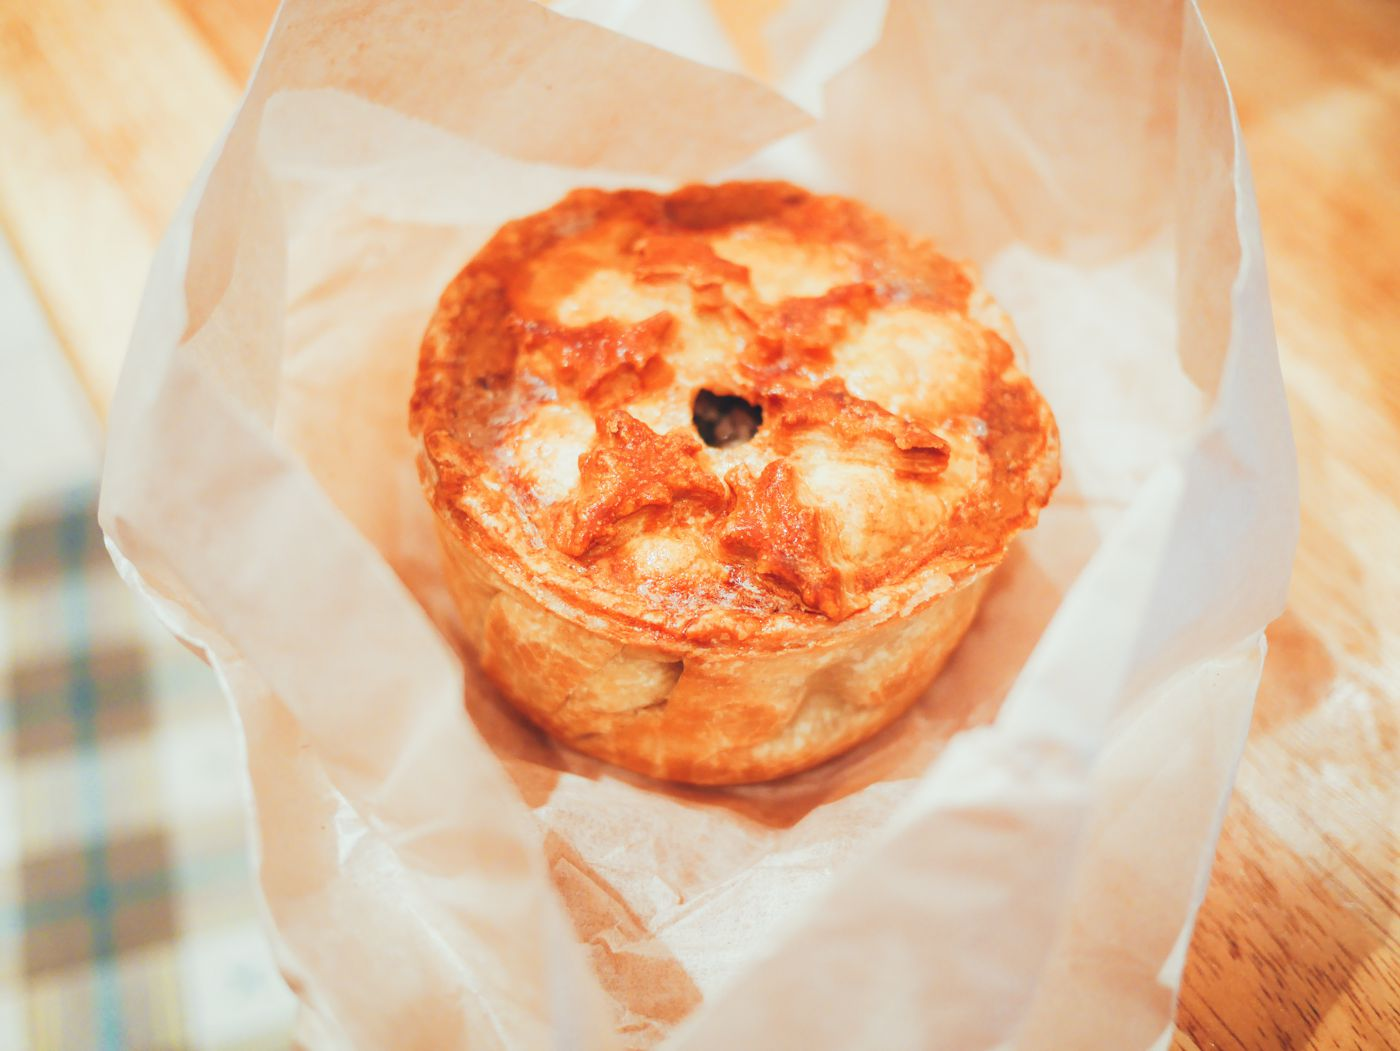 Pork Pies, Jamie Oliver and Delia Smith Recipes (3)